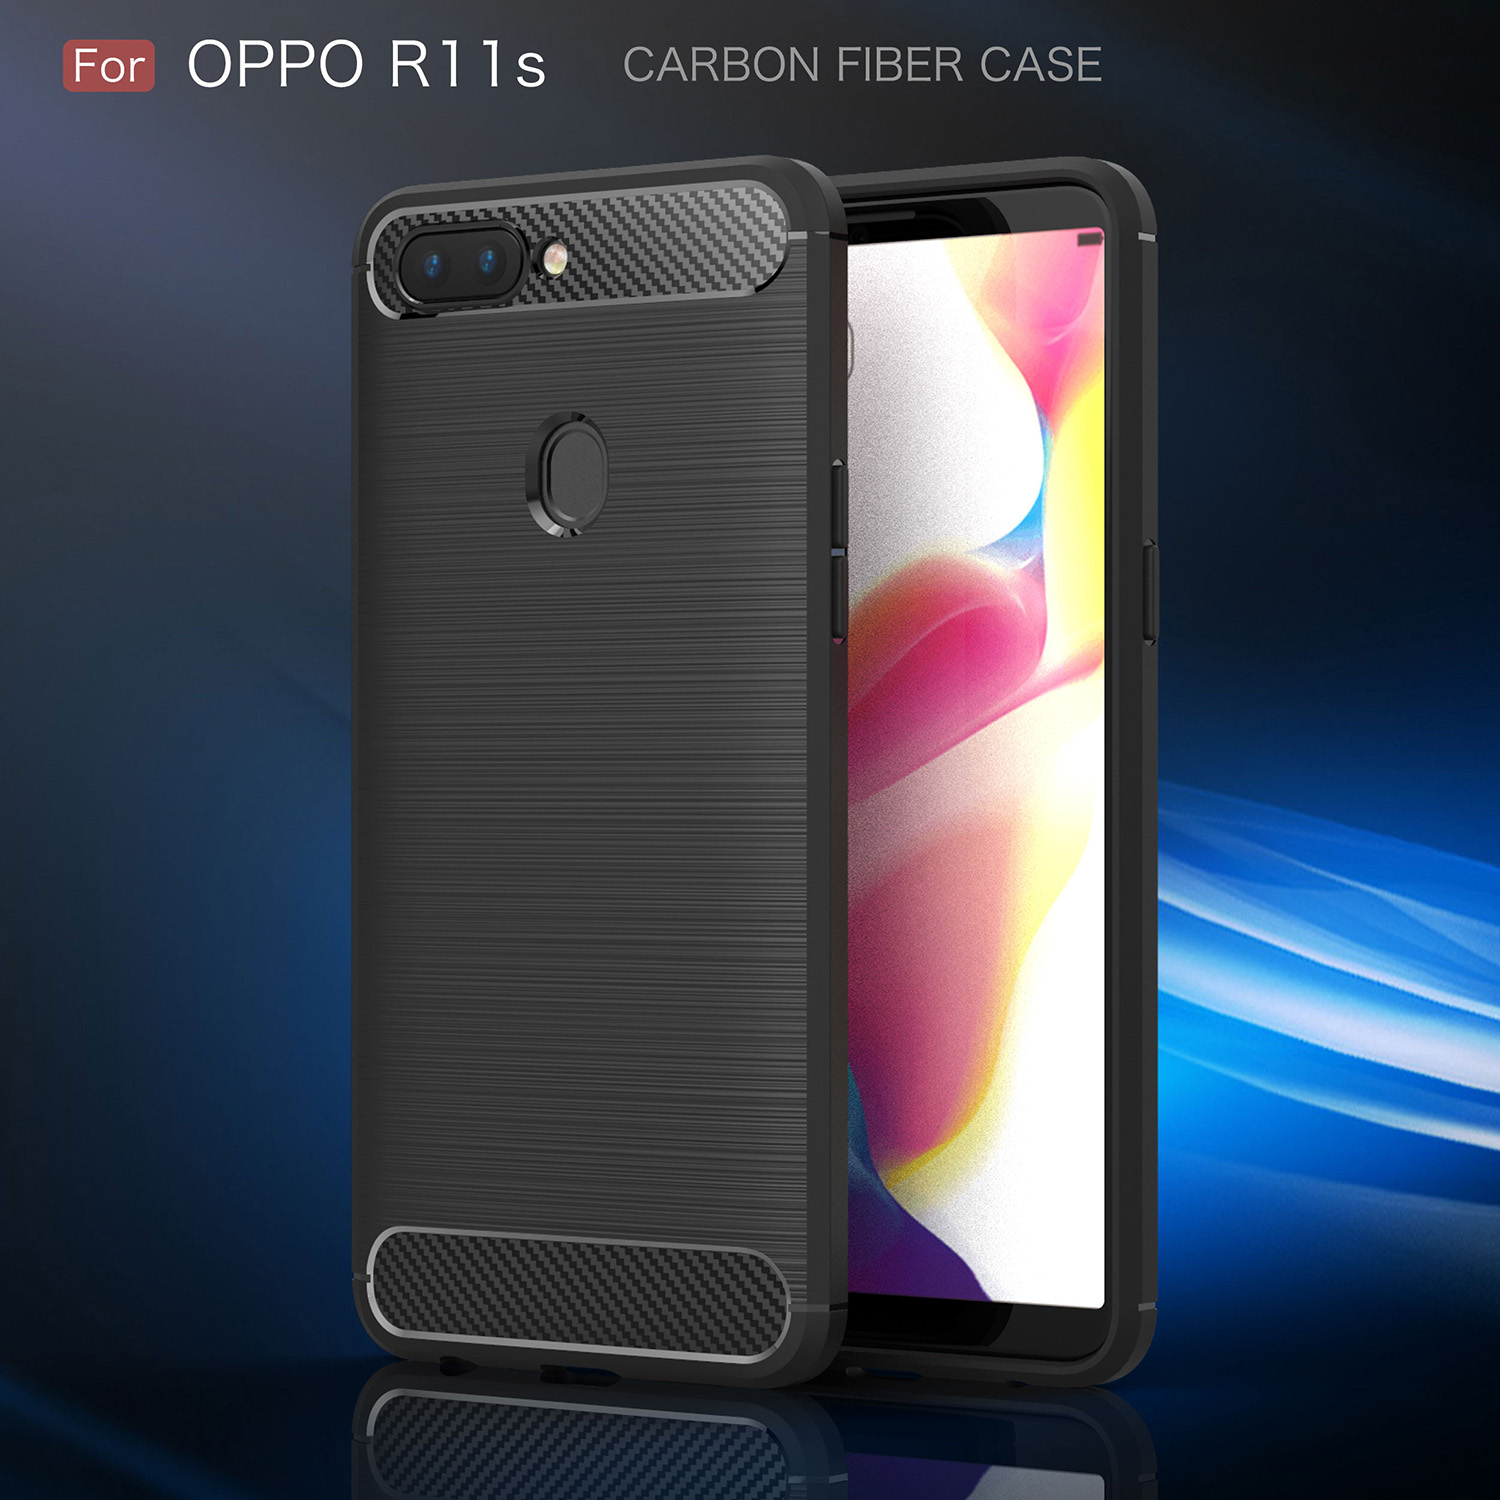 TPU Case for Oppo R11s Dual SIM TD-LTE APAC CPH1719 Carbon Fiber Cover for Oppo R11 s Phone Cases